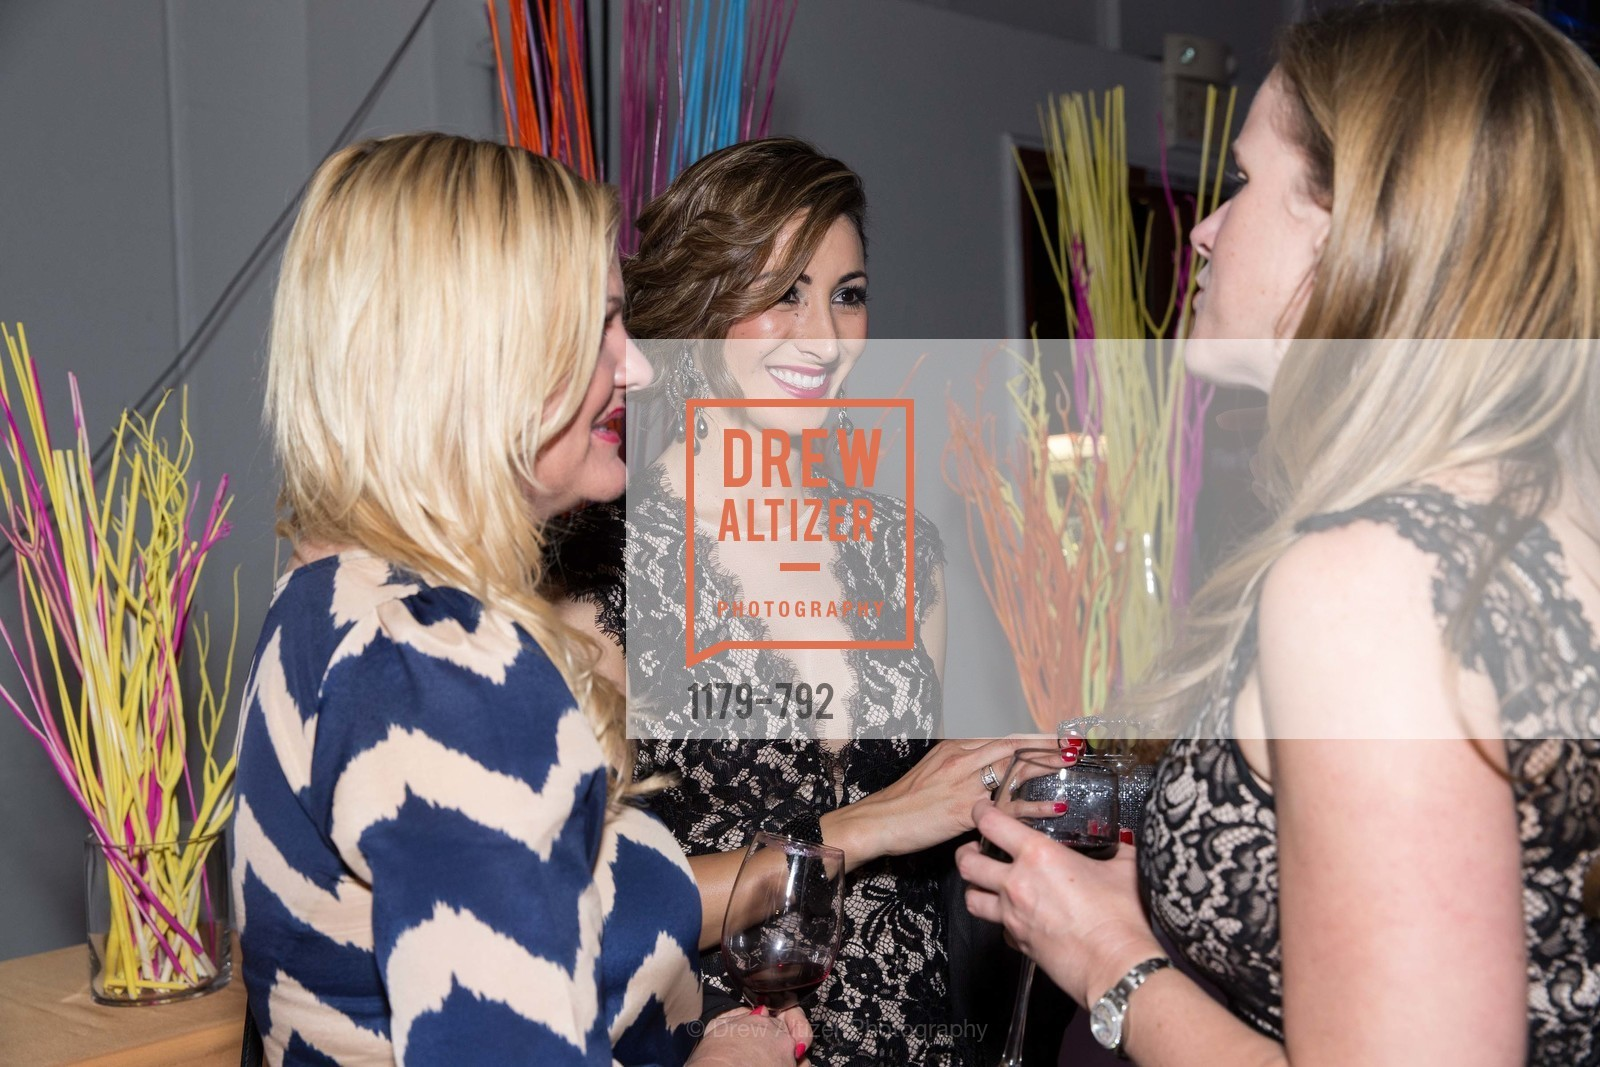 Fabi Gomez, MEALS ON WHEELS OF SAN FRANCISCO'S 28th Annual Star Chefs and Vintners Gala, US, April 19th, 2015,Drew Altizer, Drew Altizer Photography, full-service agency, private events, San Francisco photographer, photographer california